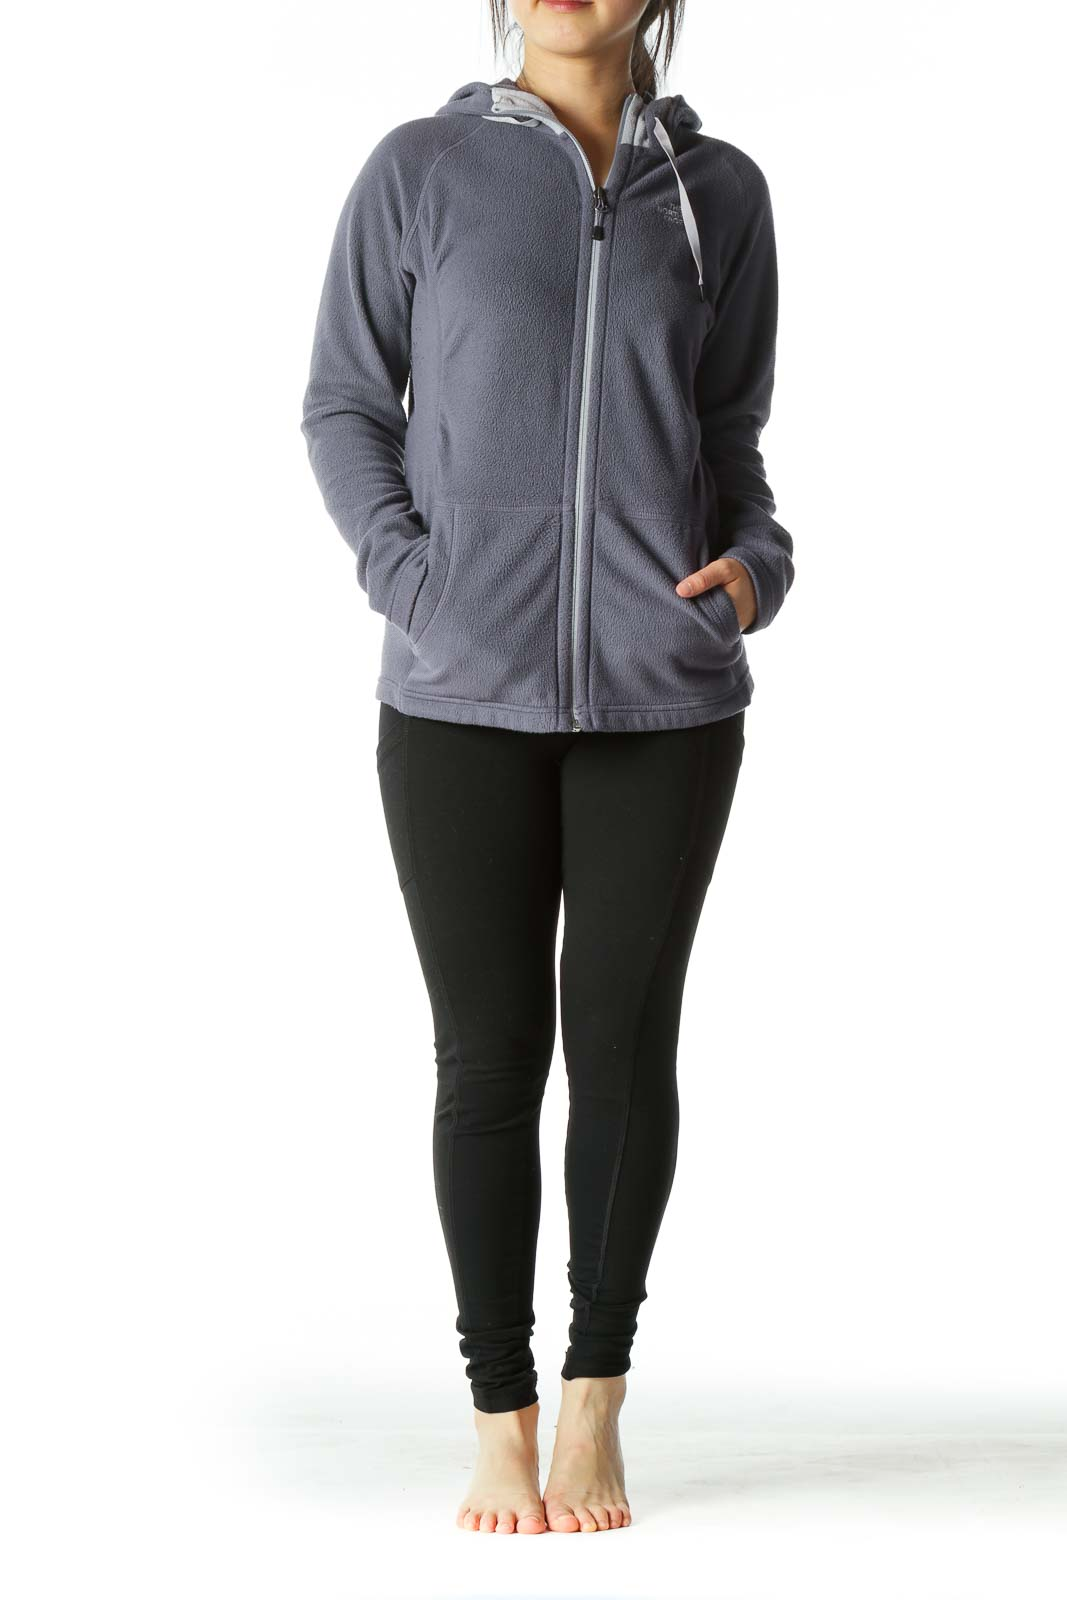 Gray Hooded Zippered Fleece Fitted Jacket